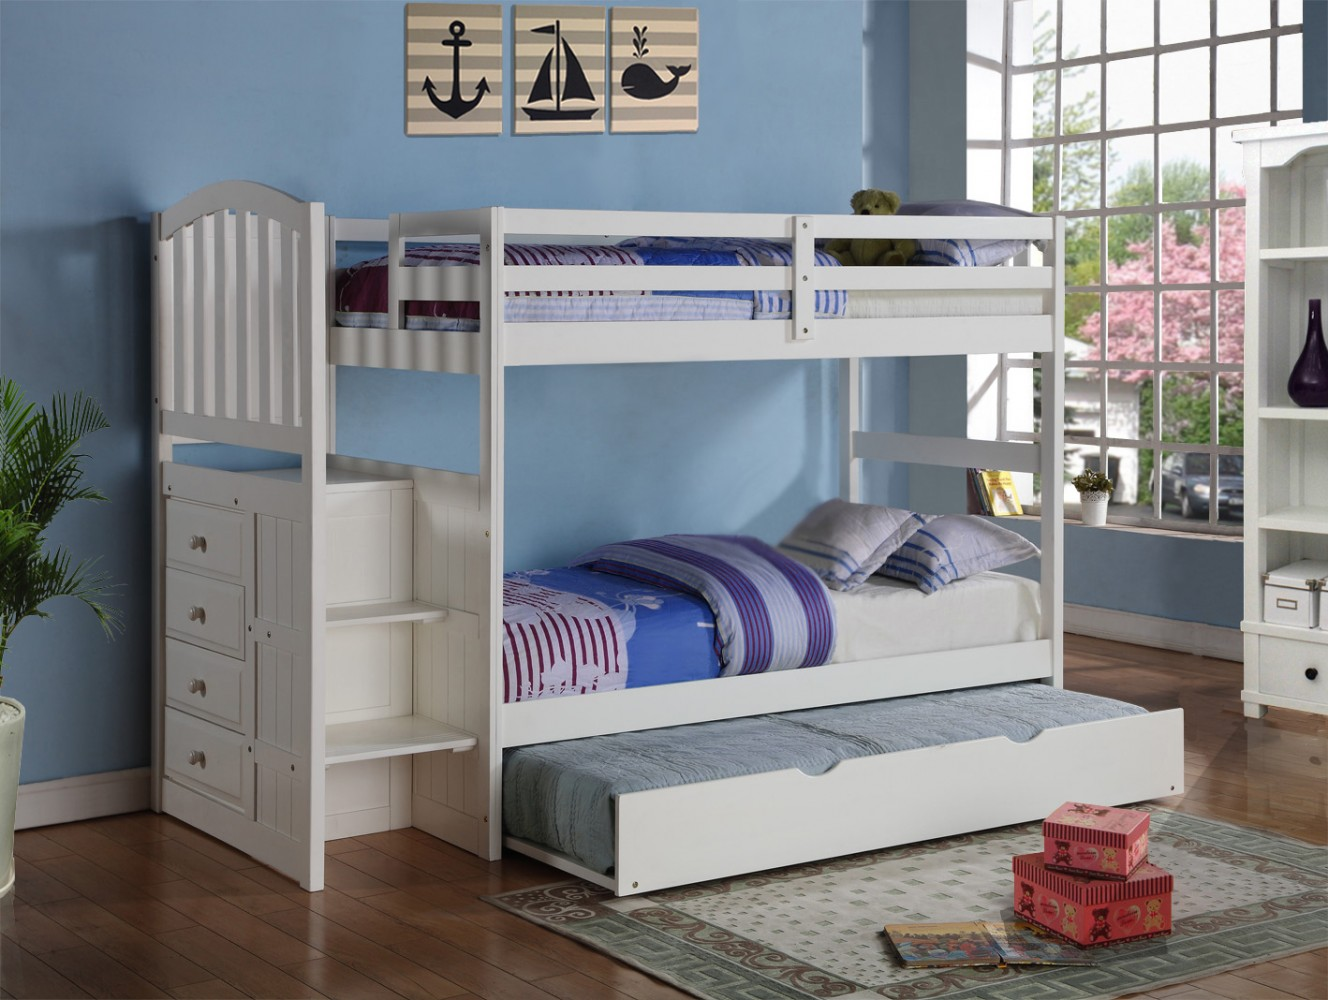 cyber monday deals for bunk beds